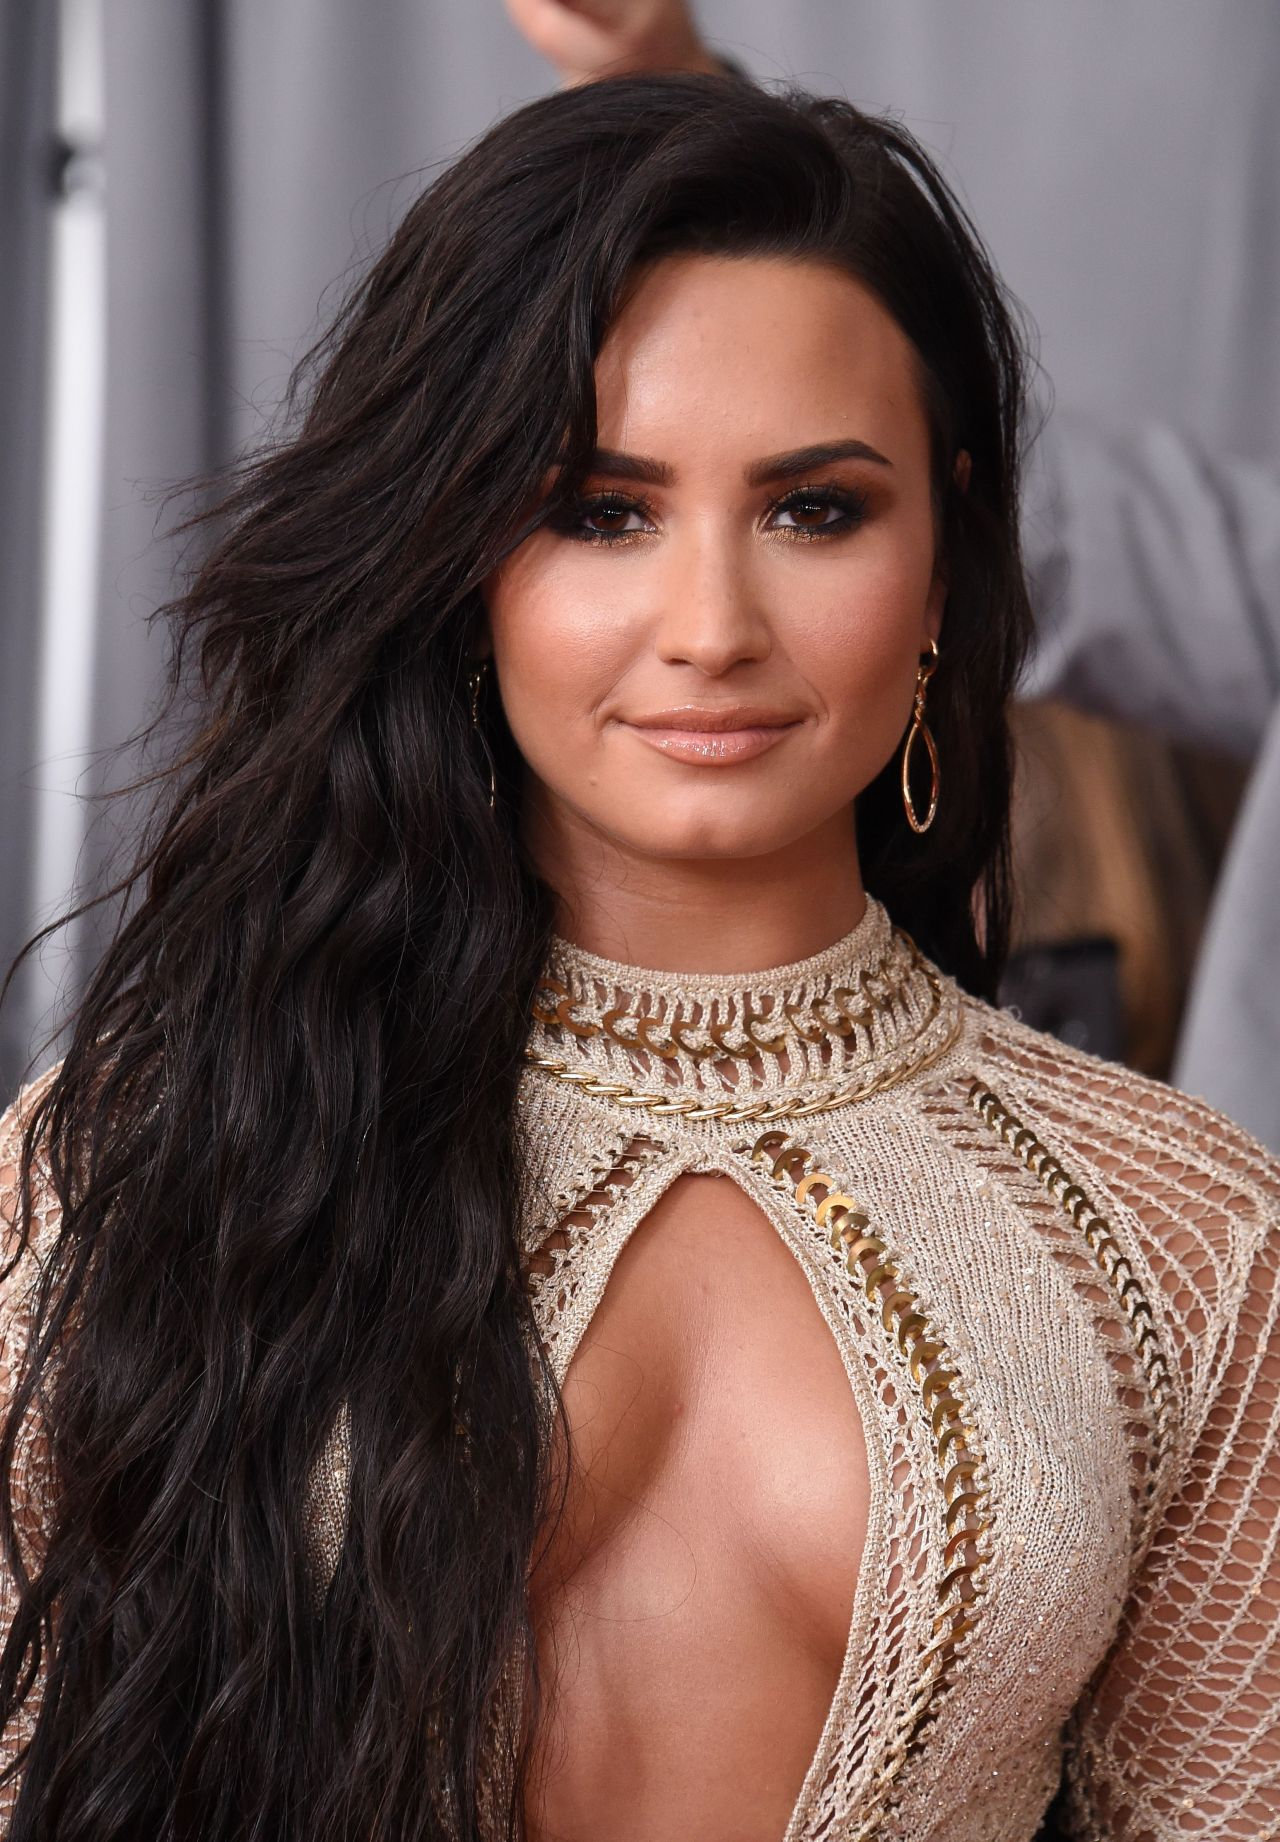 demi lovato - photo #6